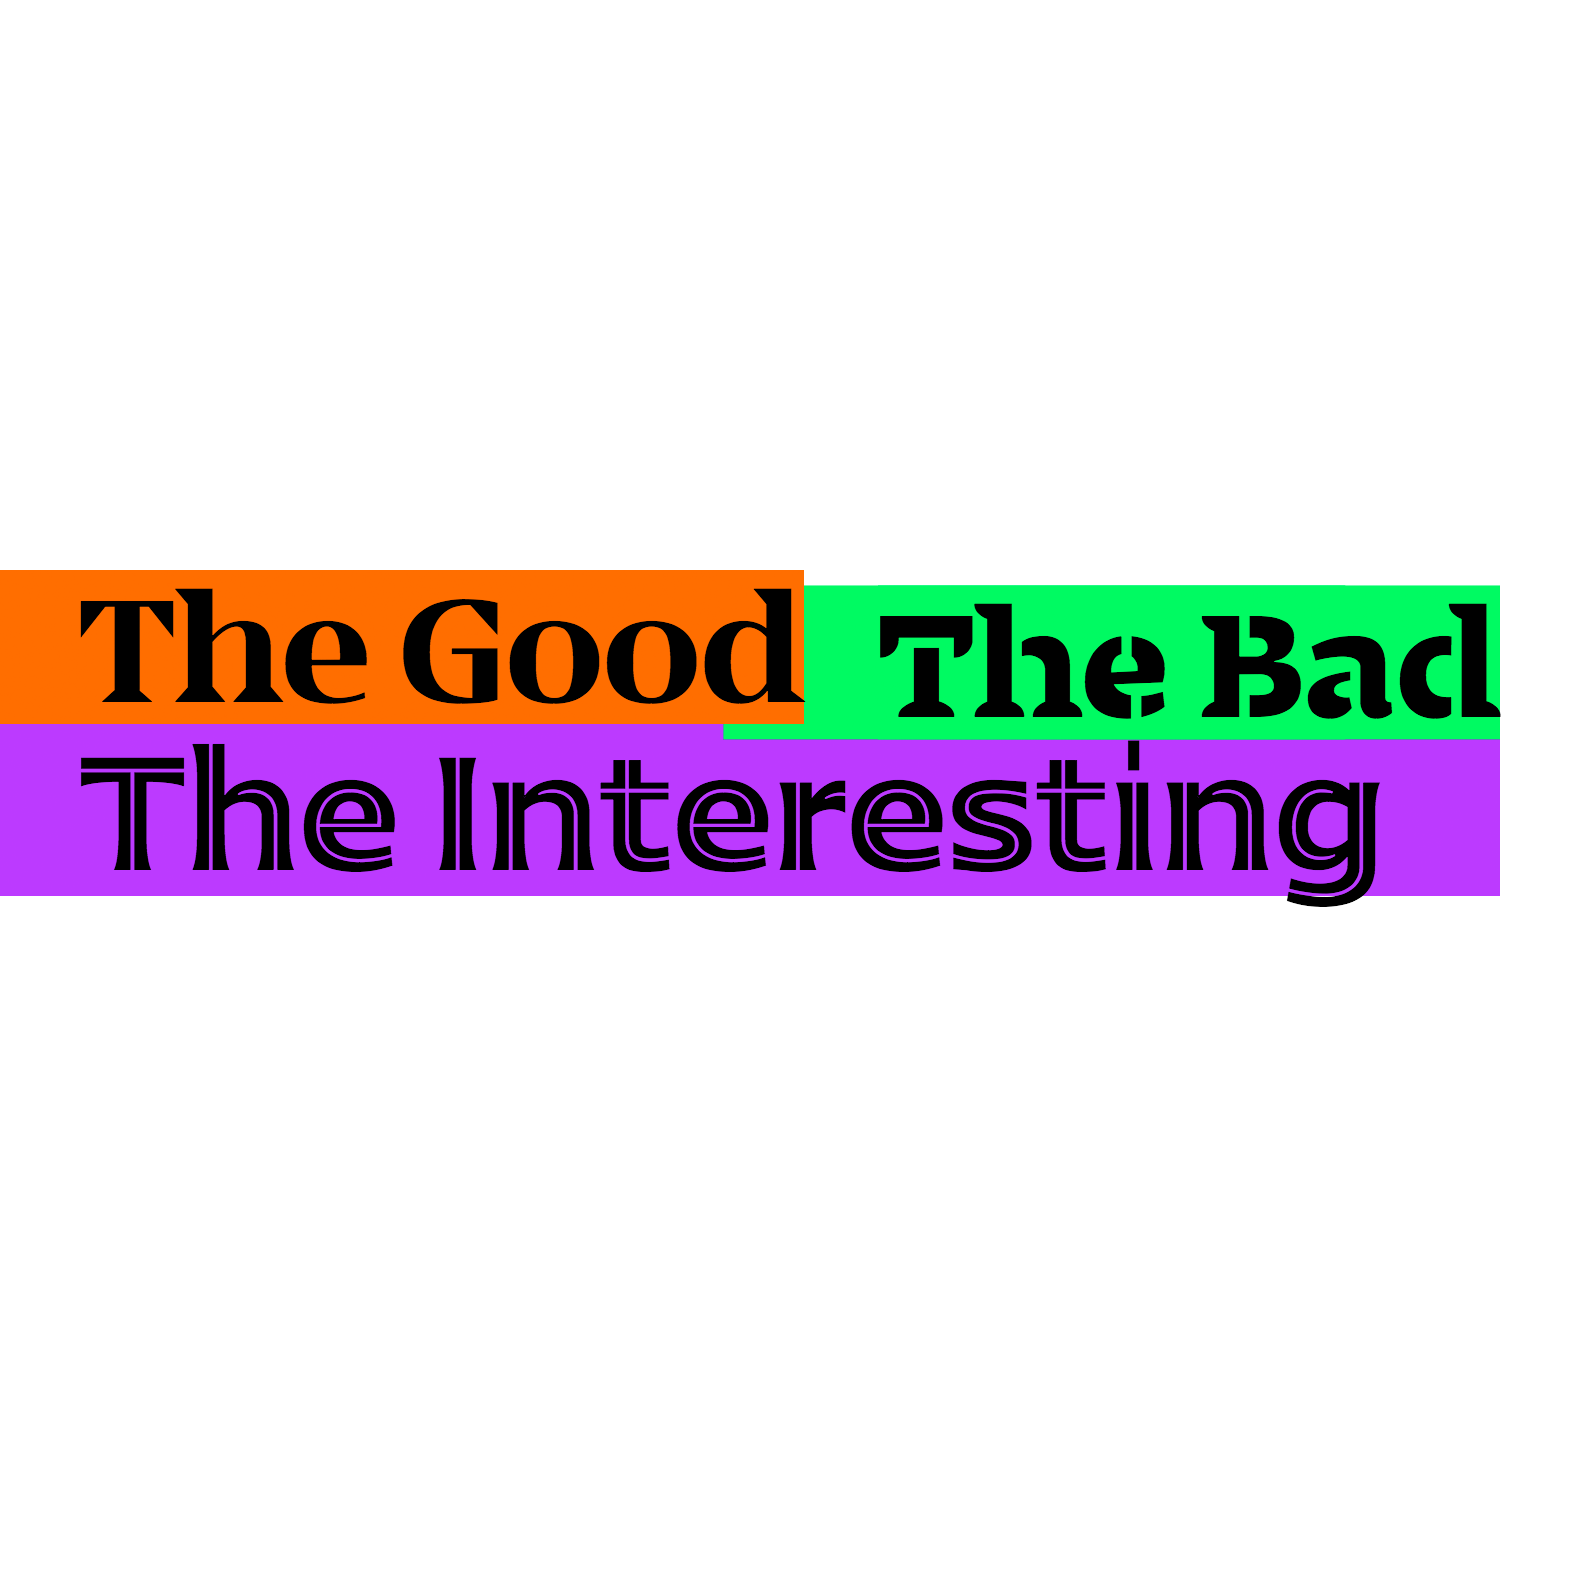 The Good, The Bad, and The Interesting